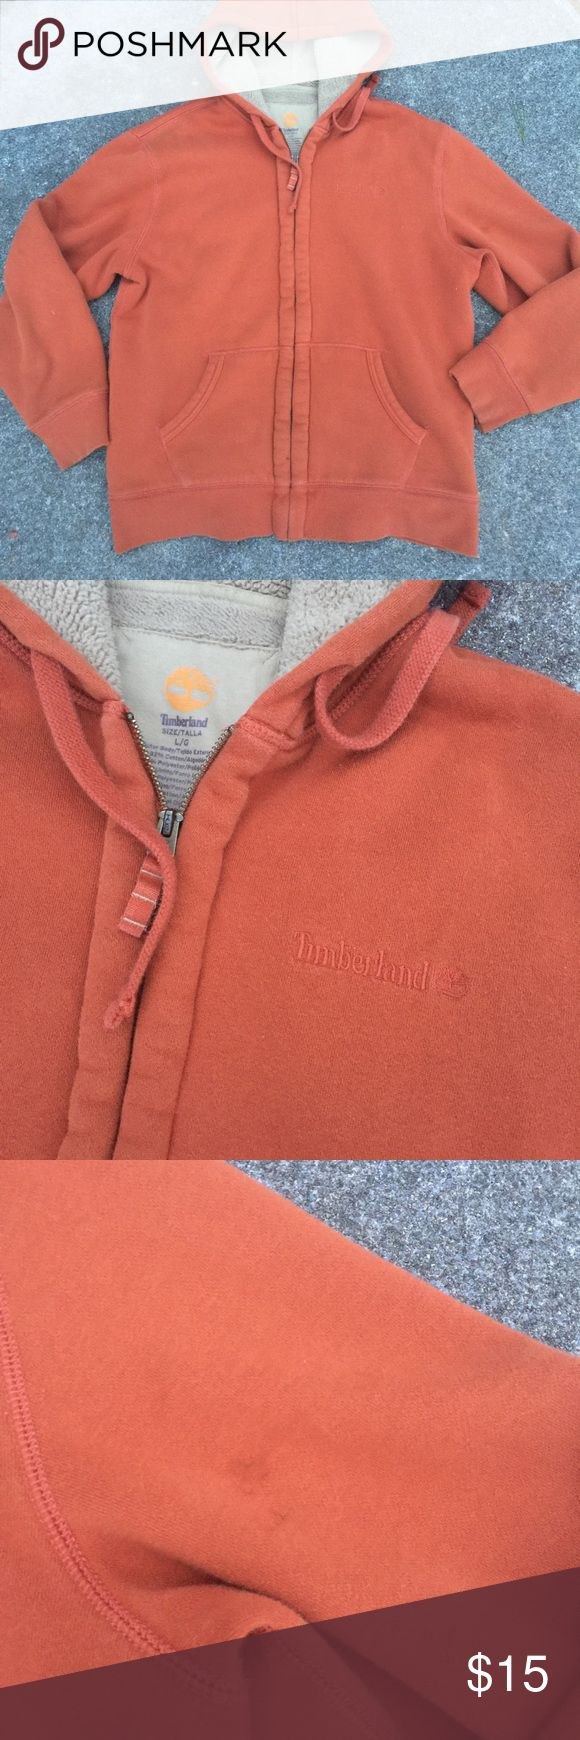 Timberland hoodie Cotton blend exterior 100% polyester thick lining inside.. extremely warm. Great condition one spot on arm. Rust orange like color BICE HOODIE Timberland Jackets & Coats